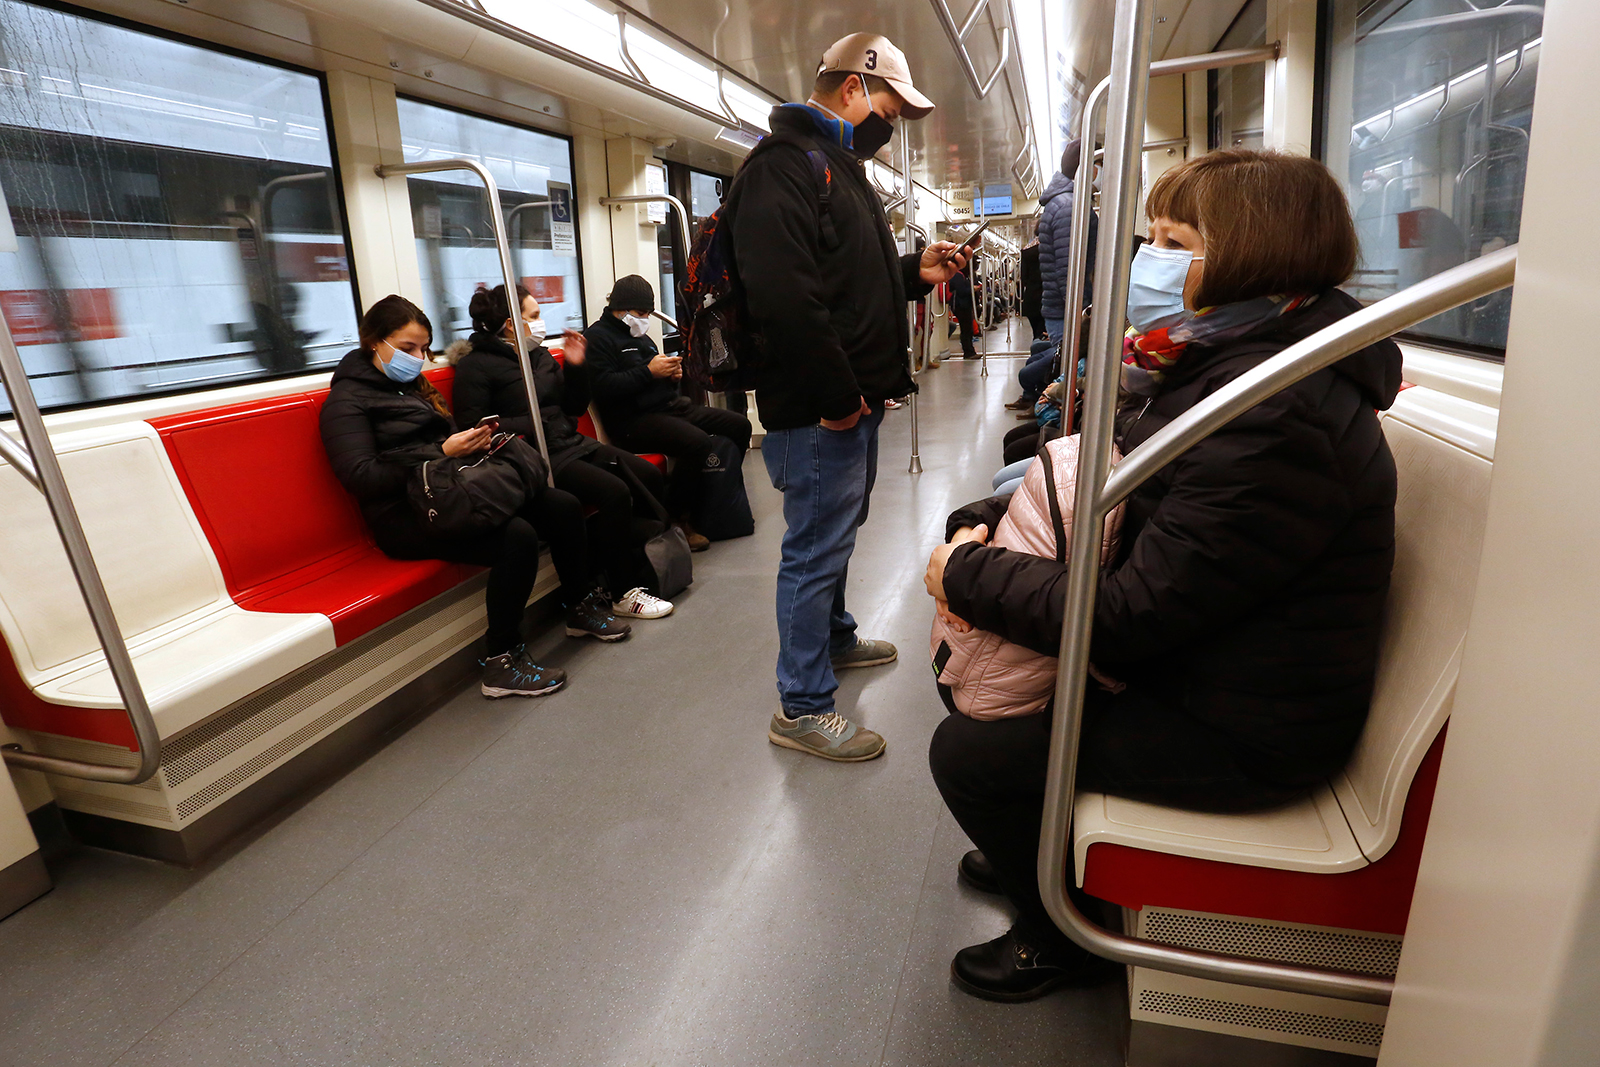 People wearing face masks ride the subway on June 16, in Santiago, Chile.